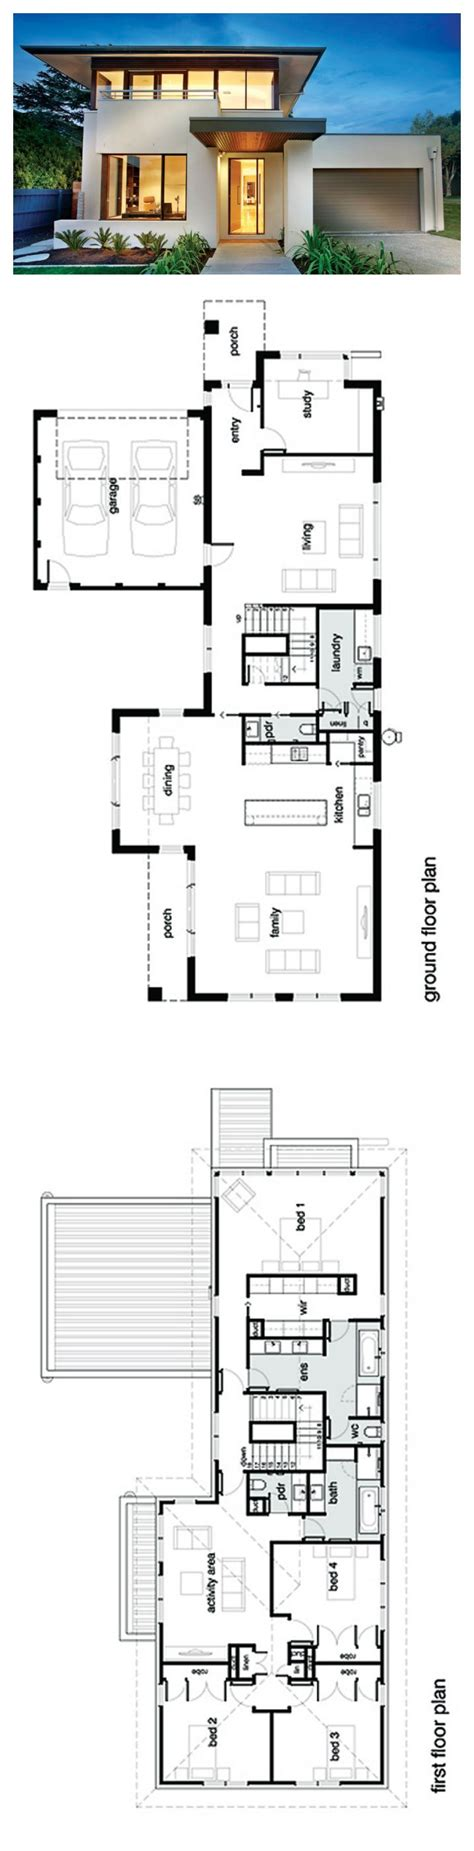 2 storey modern house floor plan the 25 best ideas about modern house plans on pinterest